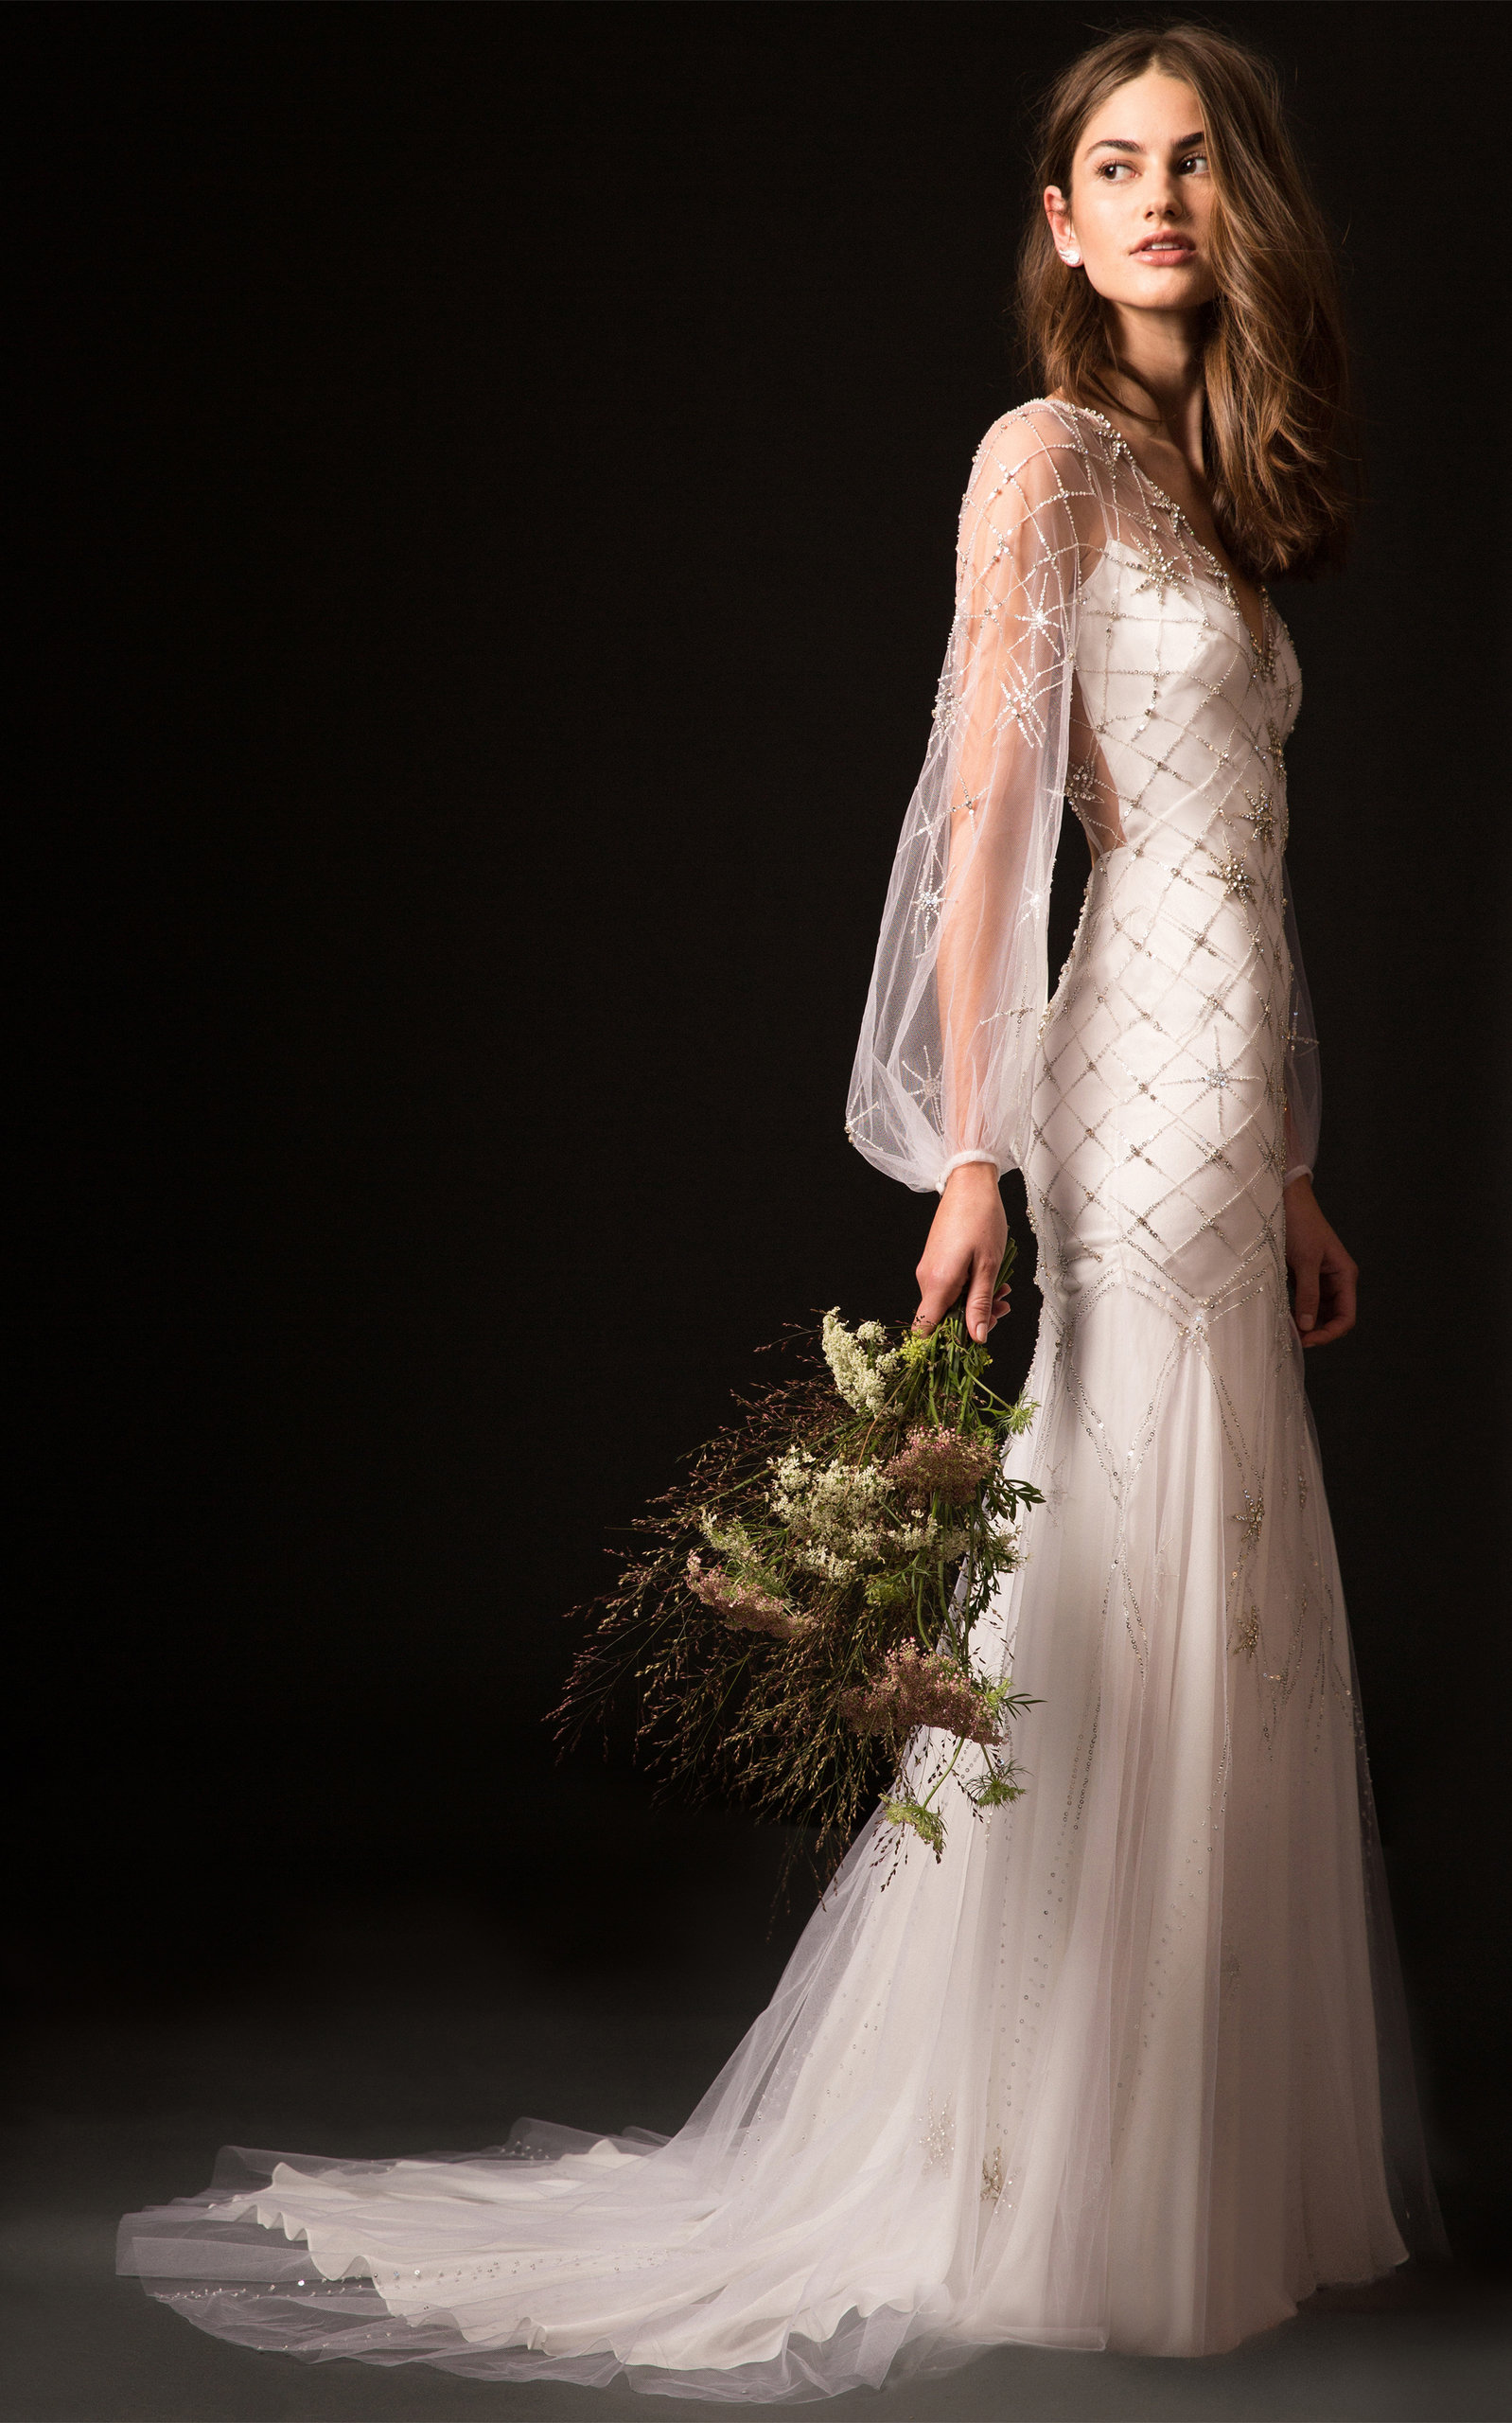 TEMPERLEY LONDON BRIDAL Celeste Gown With Embroidered Bodice And Long Sleeves in White